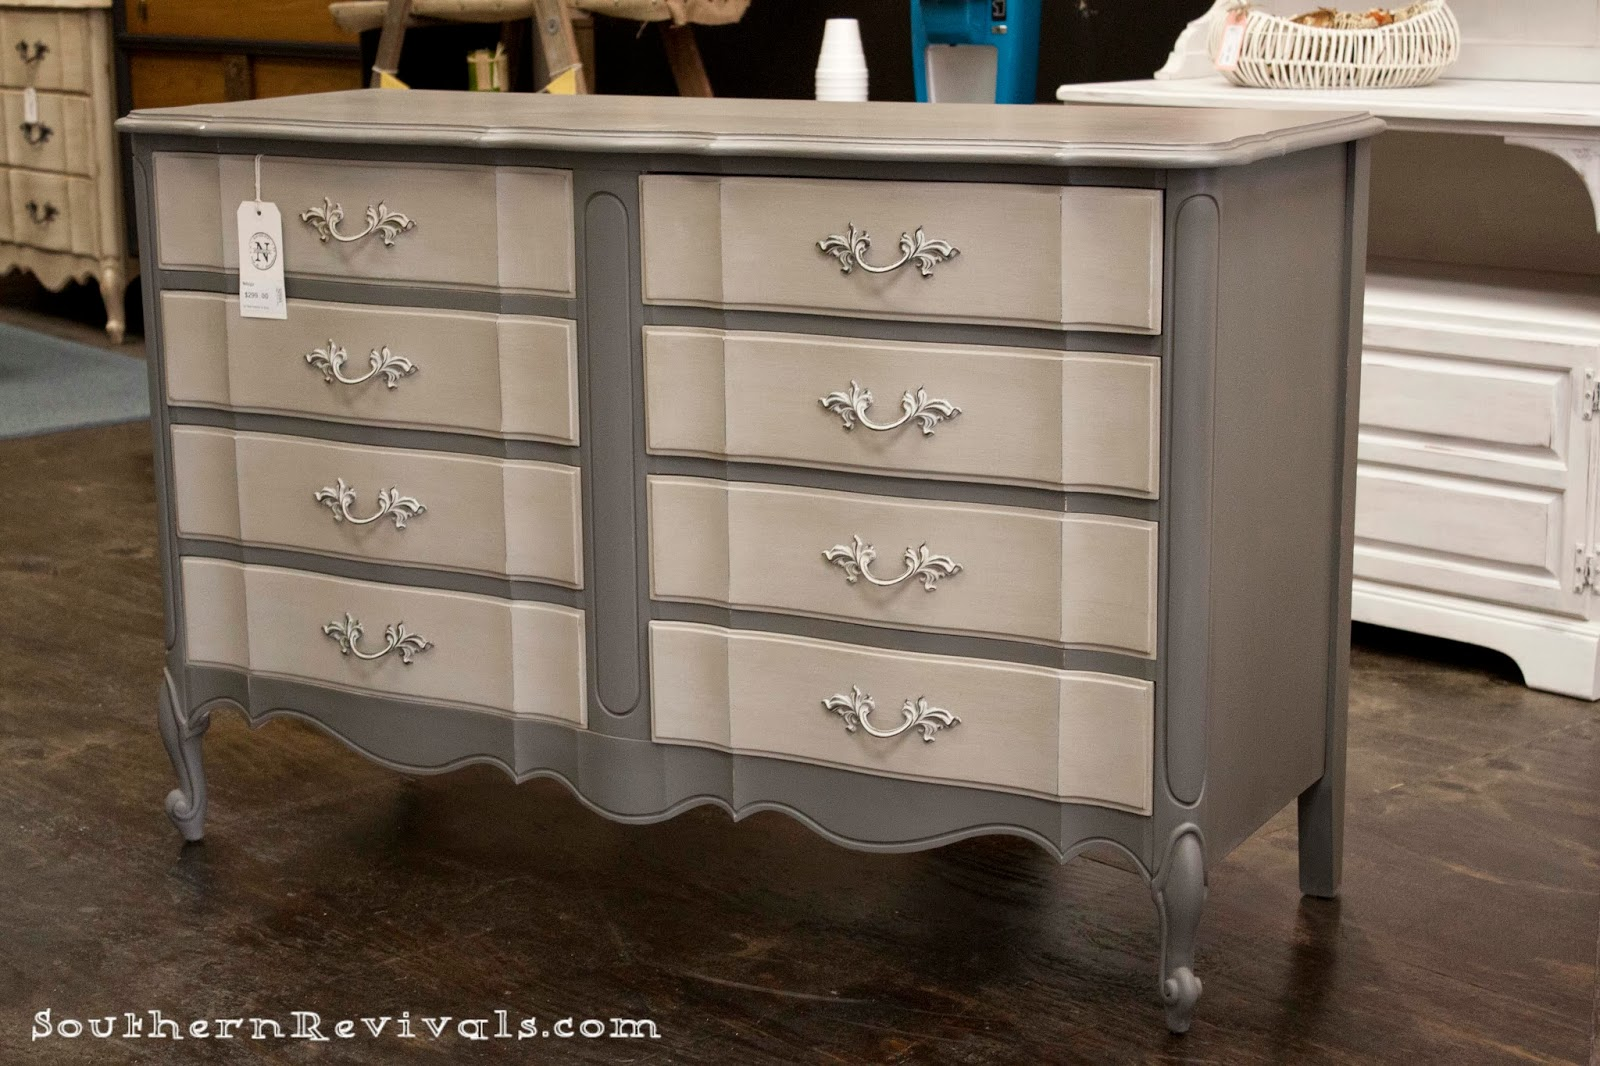 Southern Revivals French Provincial Chalk Painted Gray Dresser Redo